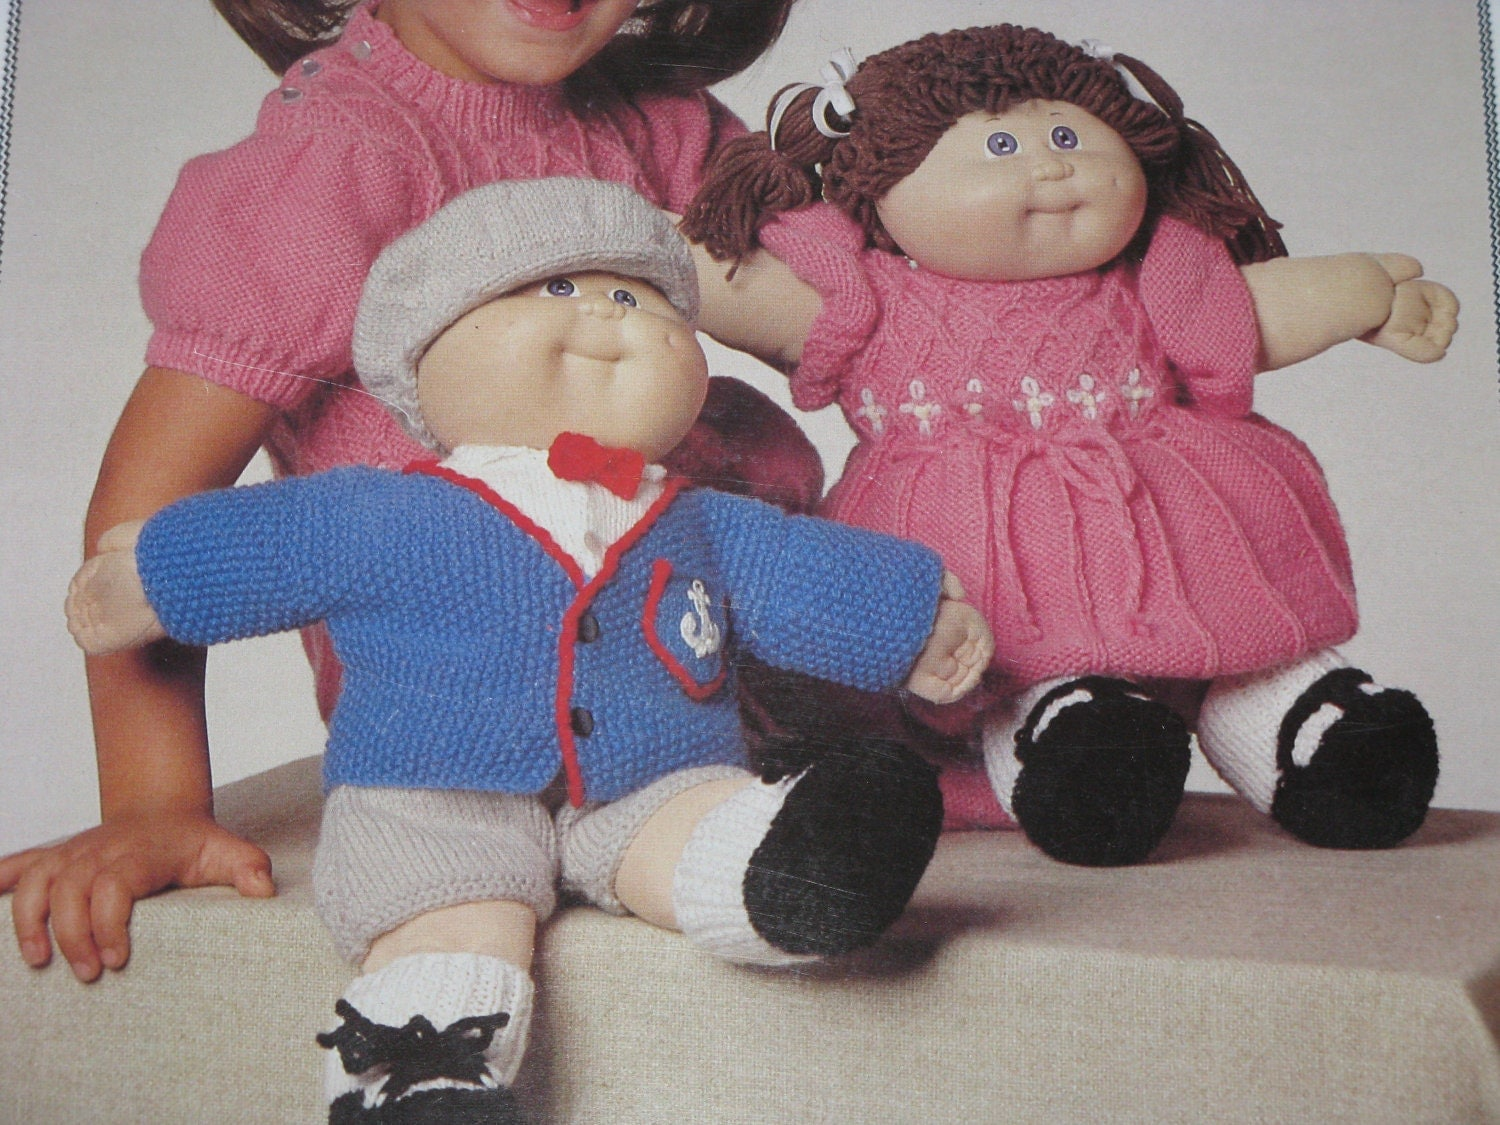 Knitting Pattern For Cabbage Patch Doll Clothes : Vintage Patons Cabbage Patch Doll Clothes Knit by corgipal ...